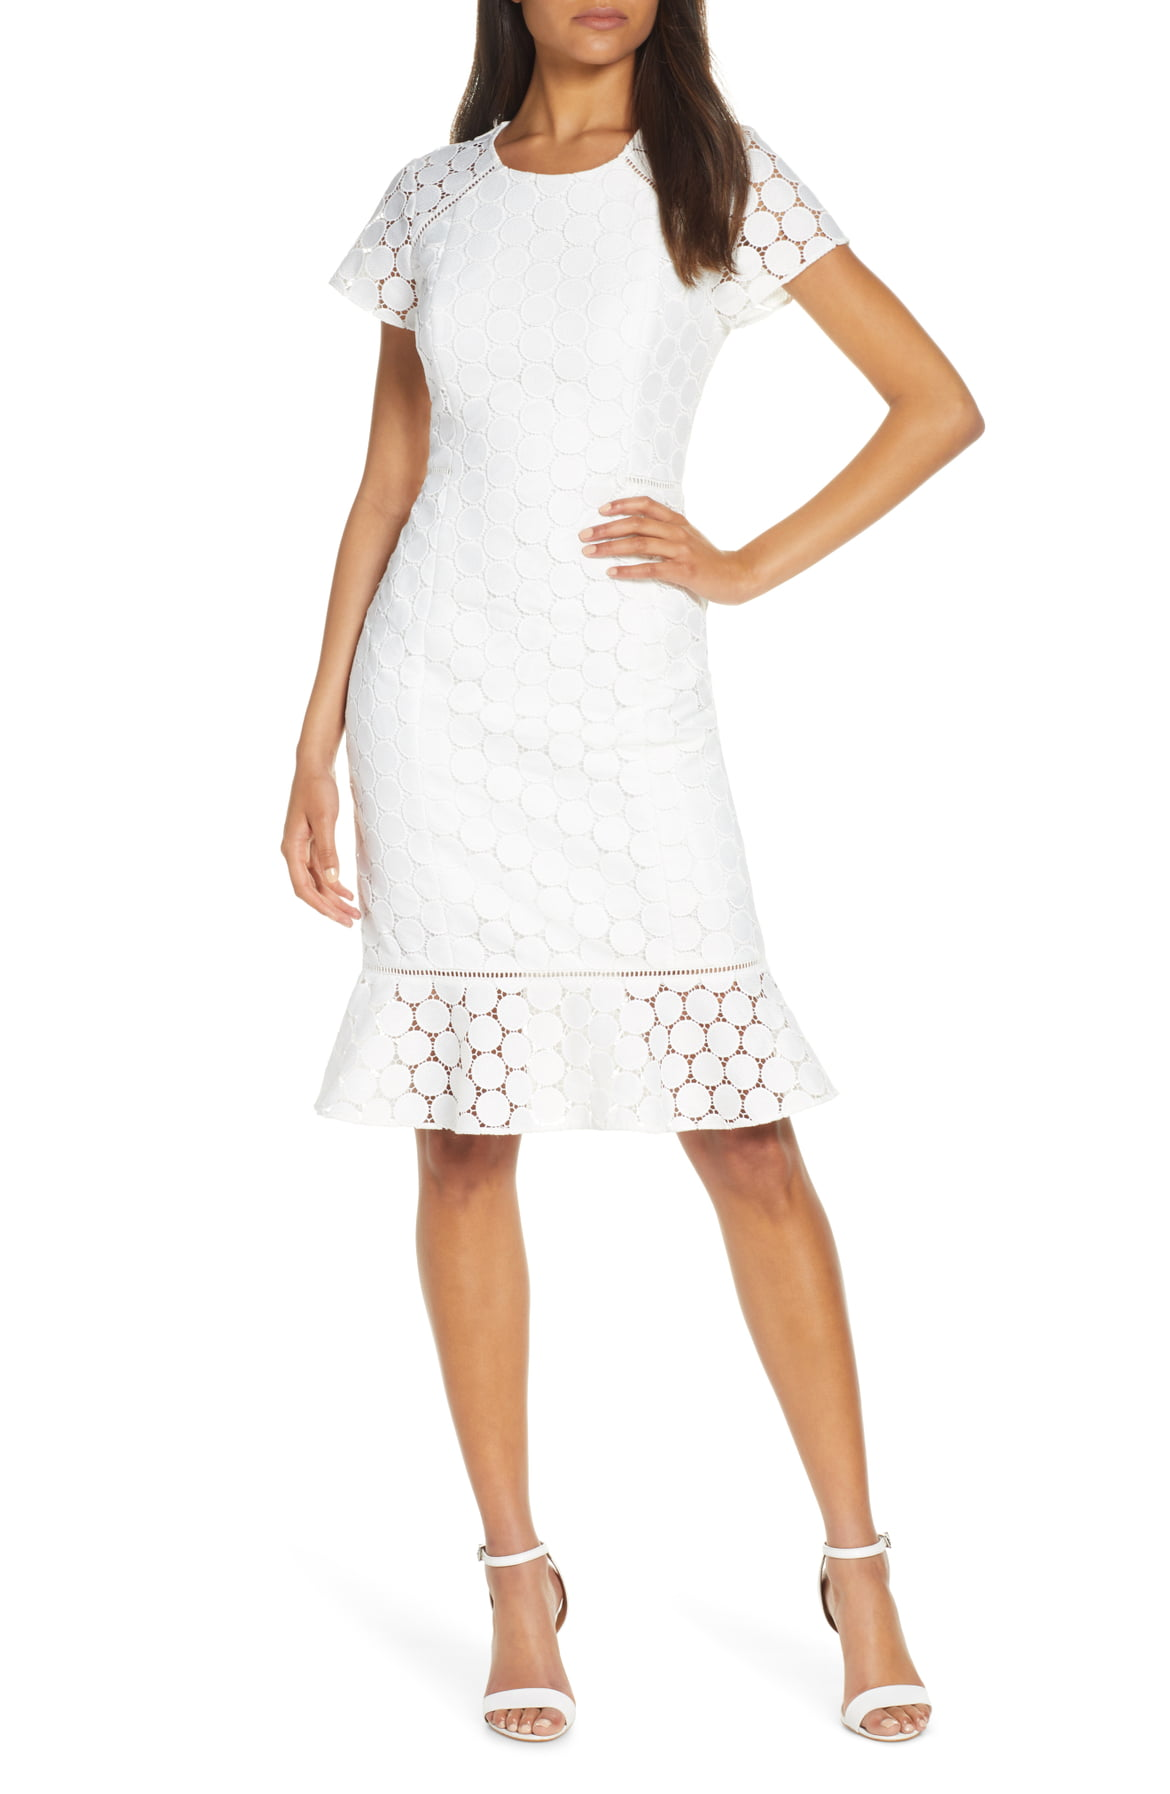 Aliza Polka Dot Lace Shift Dress